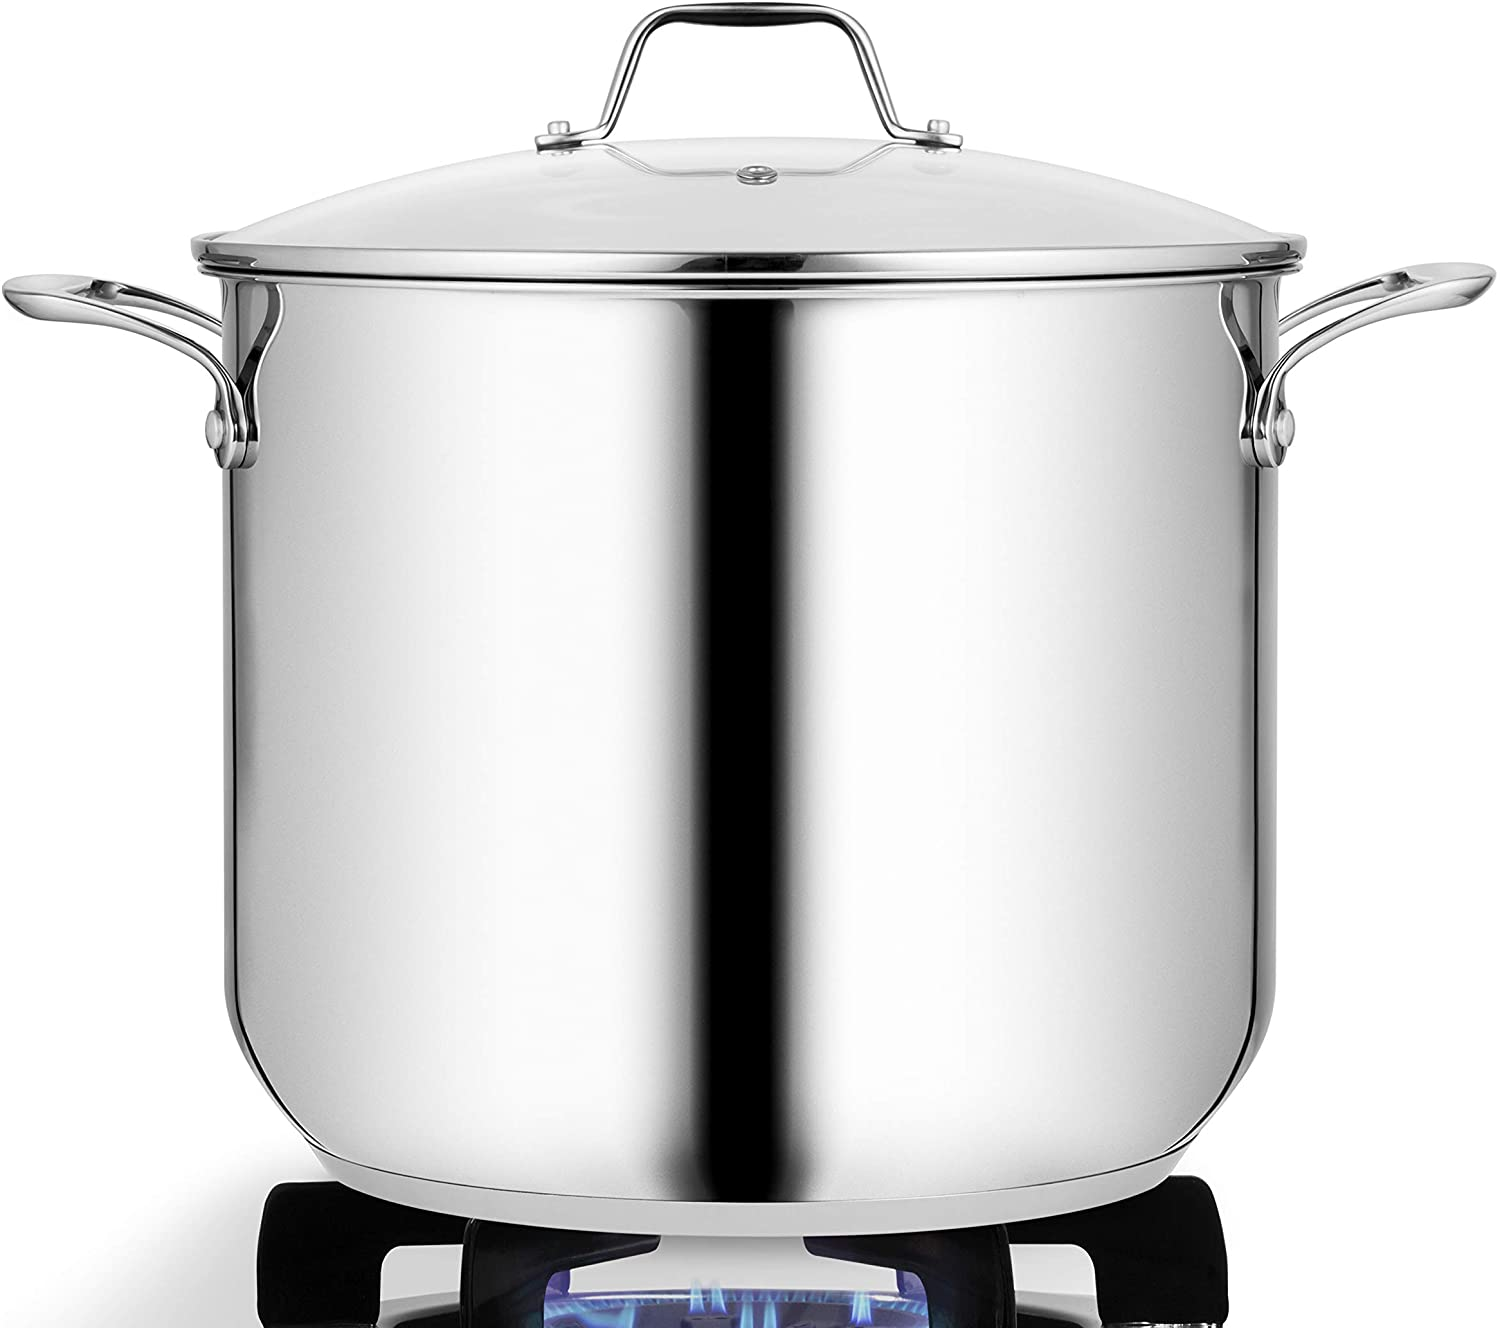 NutriChef Soup Pot with See Through Lid, Dishwasher Safe Stainless steel Pot-18/8 Food Grade Heavy Duty Induction-Large, Stew, Simmering Se, 15-Quart Stock